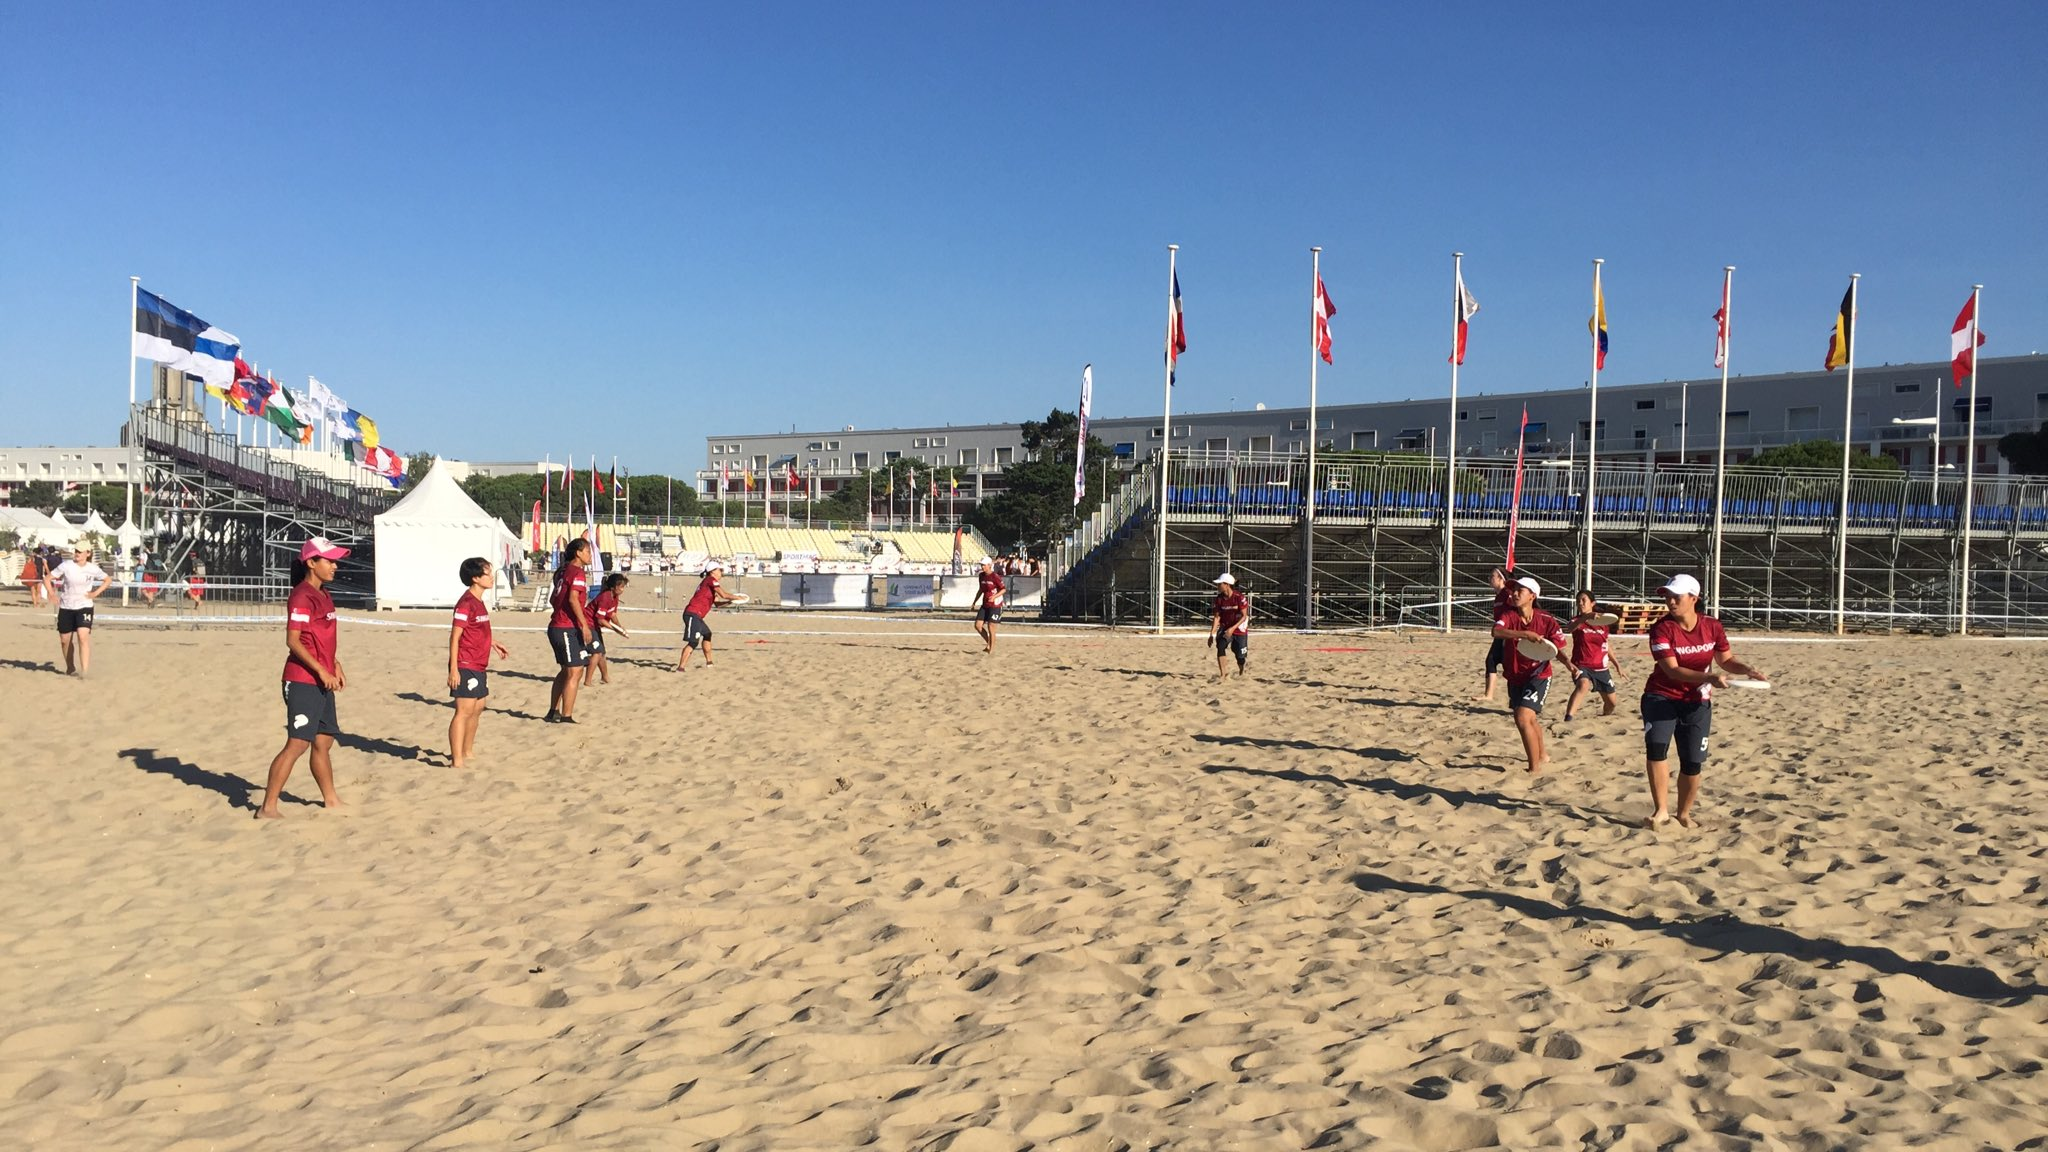 Welcome to day 2 of #WCBU2017 in Royan! #SIN #WMN take on #SUI in 20 mins. https://t.co/mu4hWNR5jJ <a href='https://twitter.com/SingaporeDisc/status/876691323264356353/photo/1' target='_blank'>See original »</a>